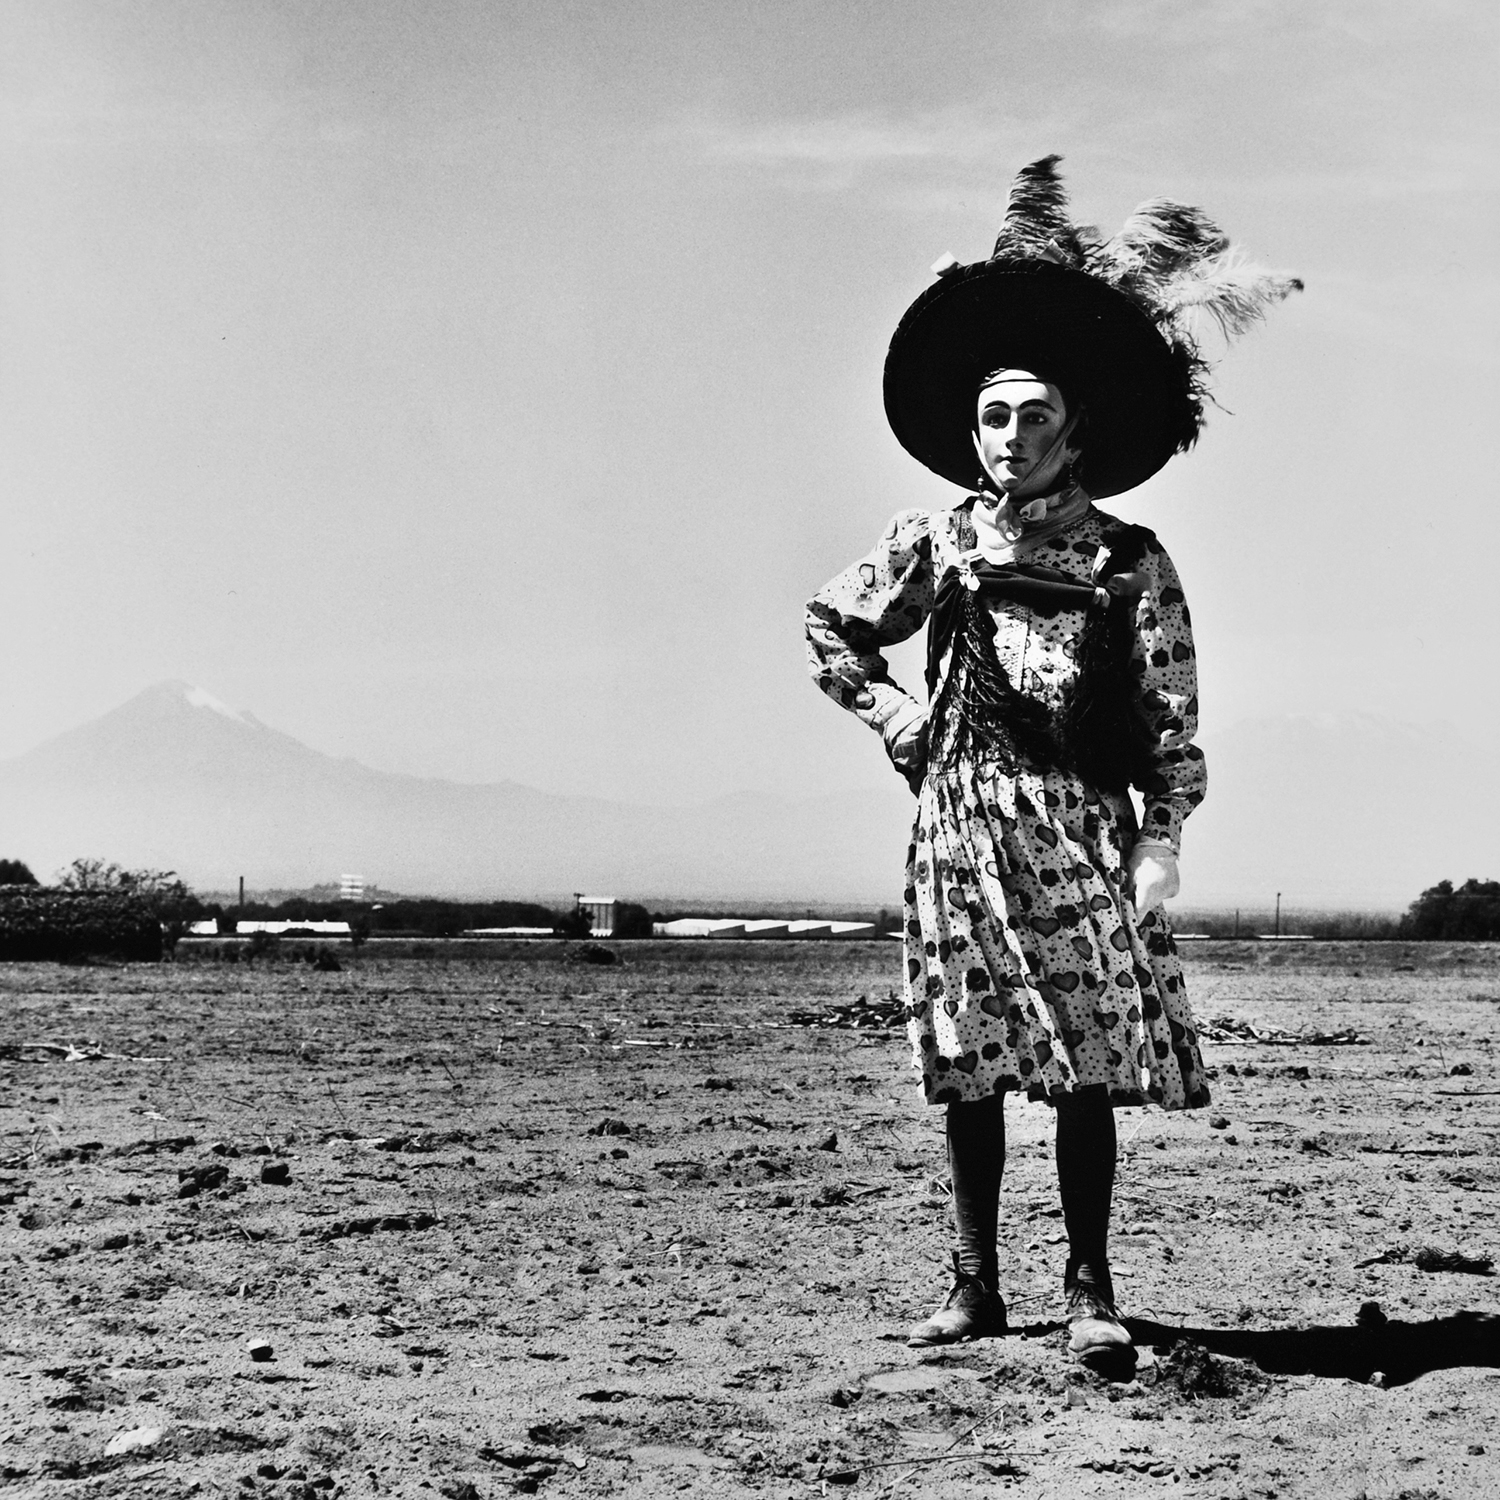 Graciela Iturbide  Carnaval,  Tlaxcala, México, 1974 Sheet: 14 x 11 inches / Image: 9.4 x 9.25 inches Silver Gelatin Print Illustrated in:  Sueños de papel , 1988, cover;  Images of the Spirit , 1996, page 5